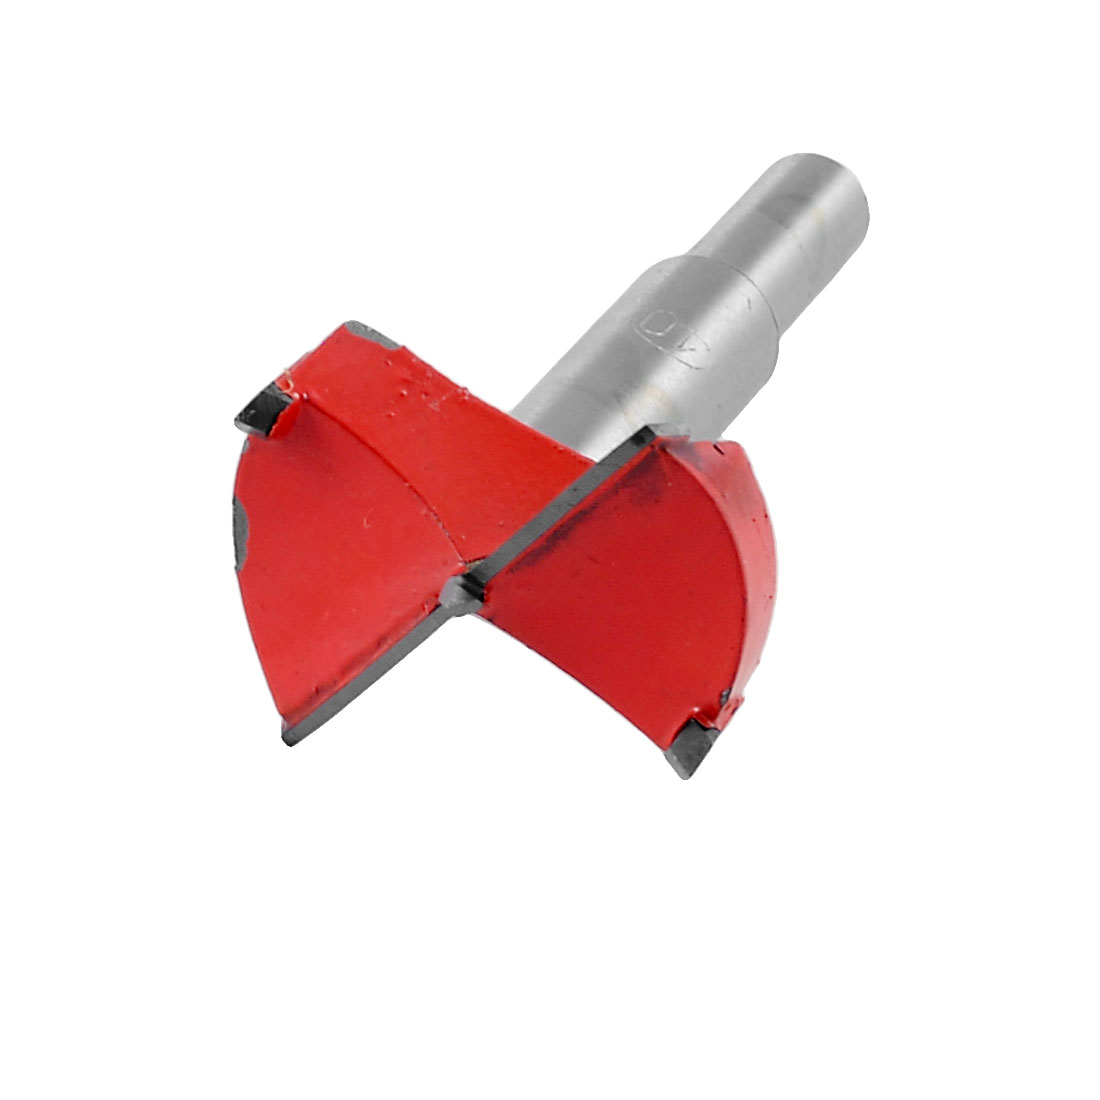 Carbide Tip 40mm Dia Boring Bit Woodworking Drill Tool Red Silver Tone